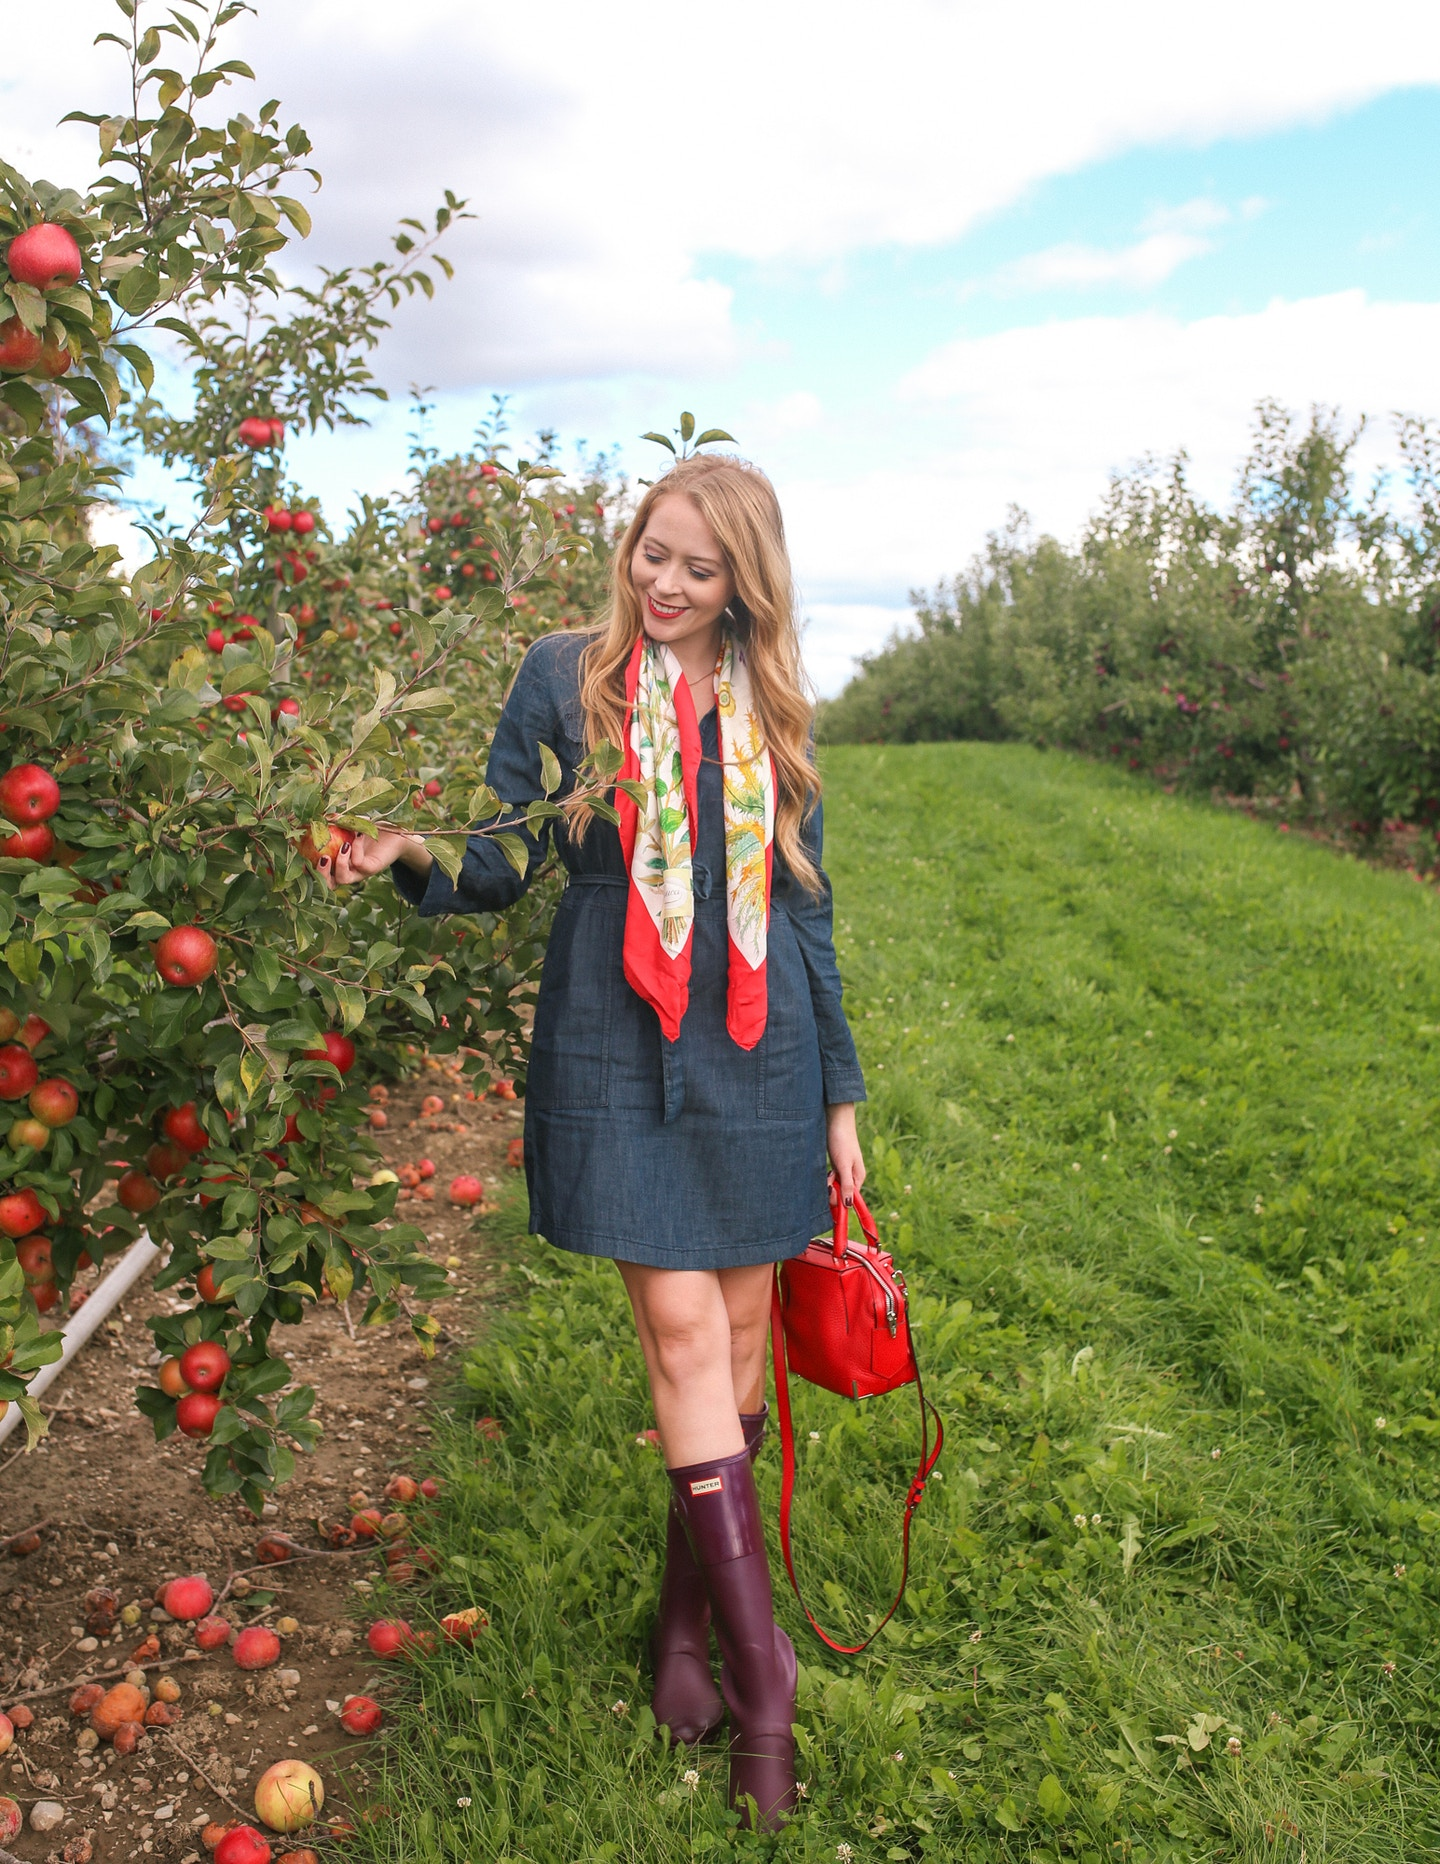 What to wear to go apple picking near Toronto: a denim dress, tall Hunter boots and a vintage Gucci silk scarf is a chic fall outfit idea.